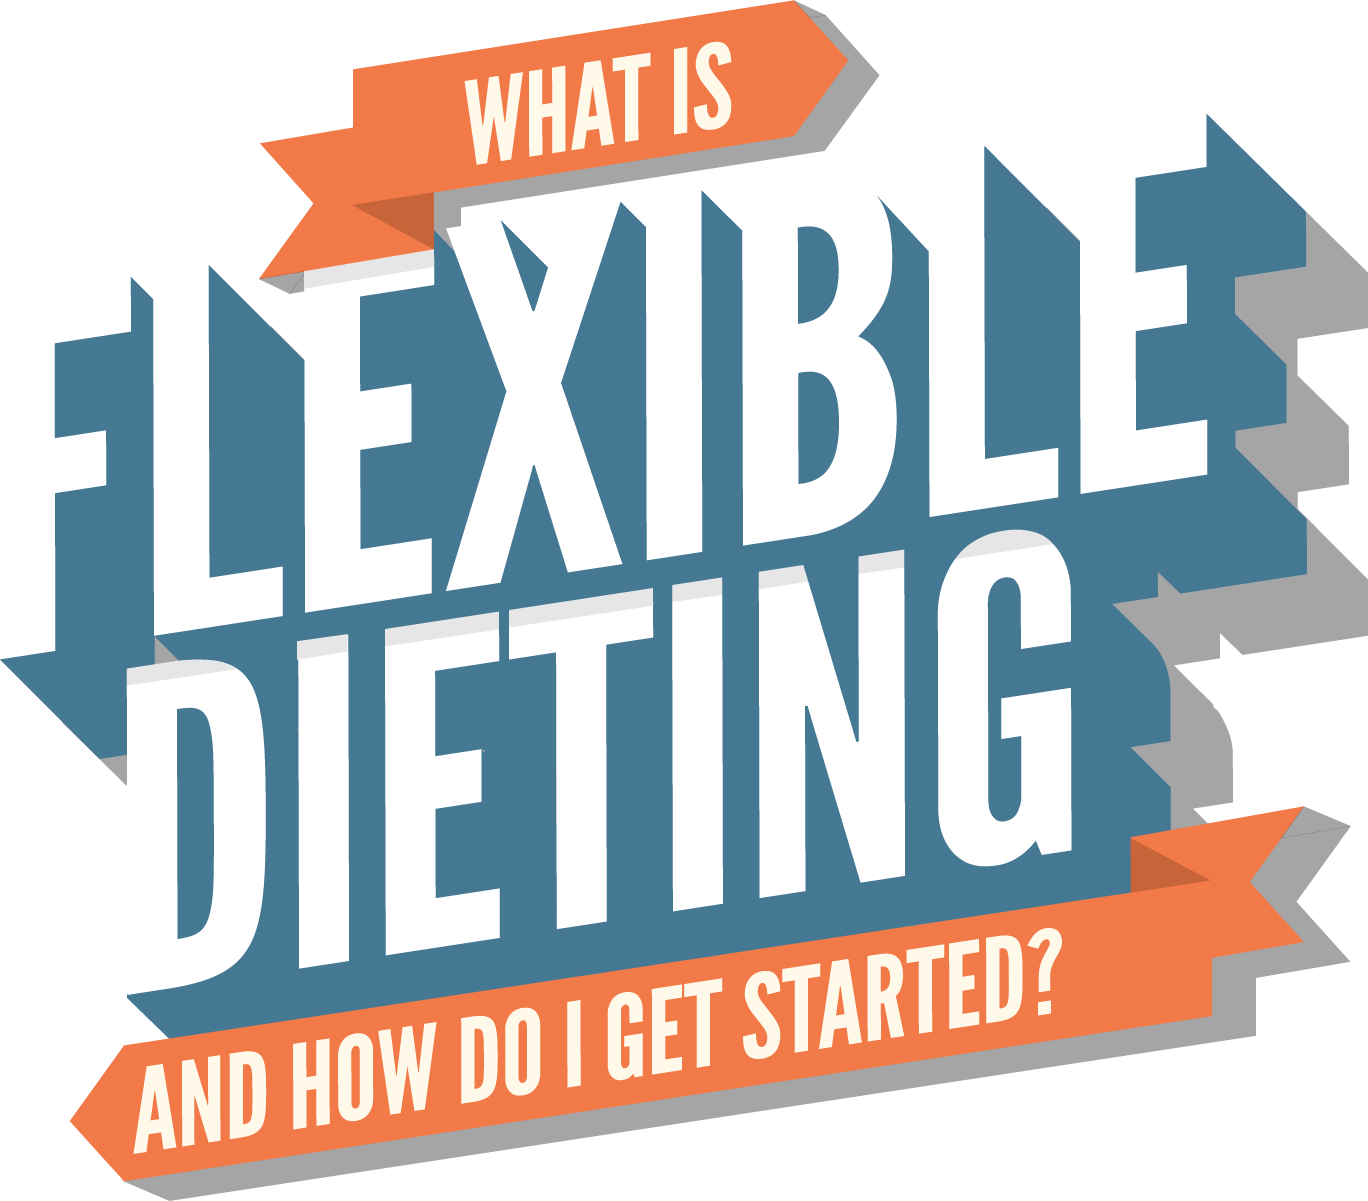 Flexible Dieting - What is it and how do I get started?